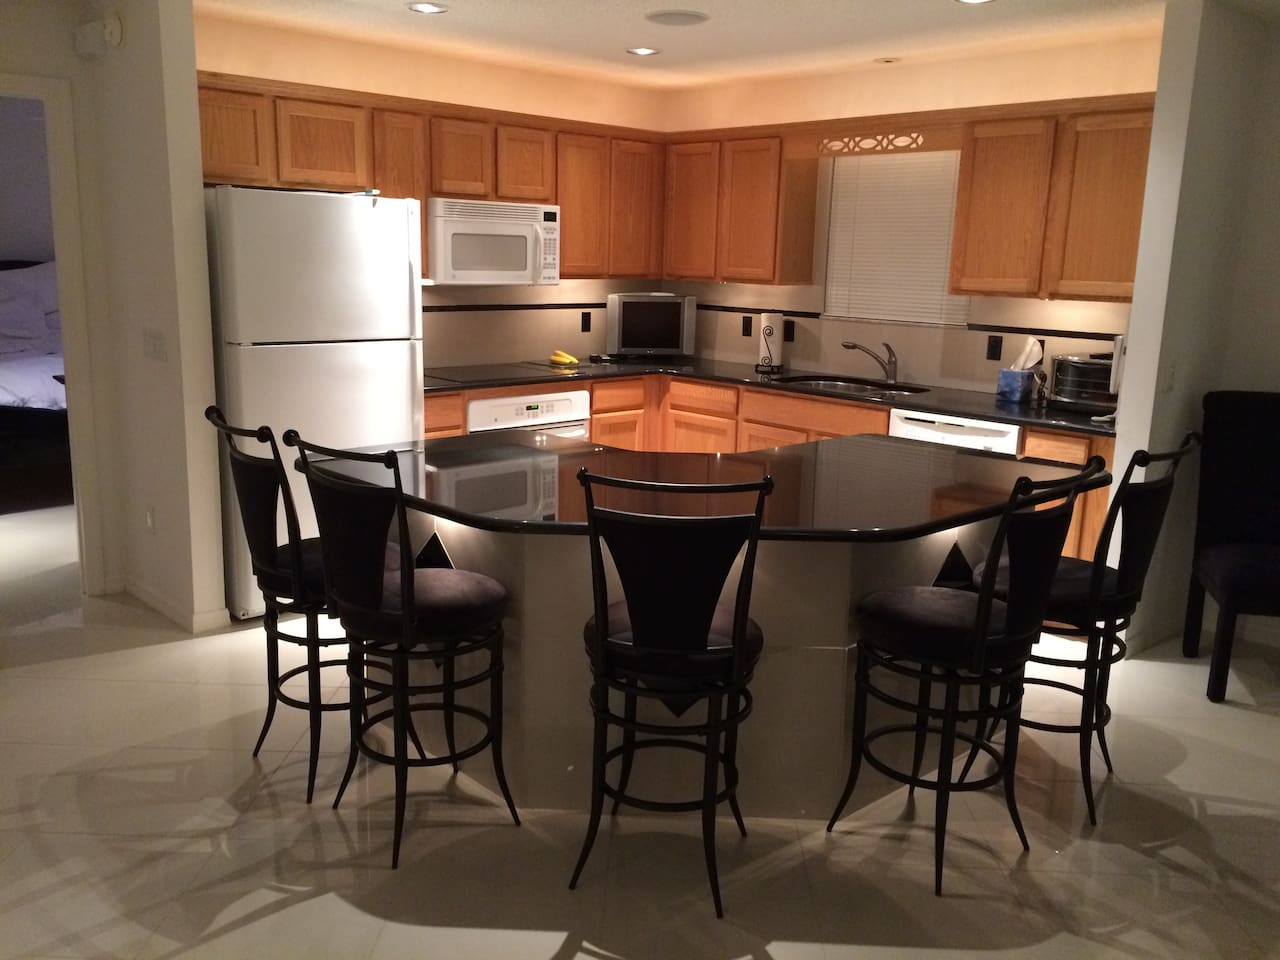 Island seating for five, Granite counter top and recessed lights overhead